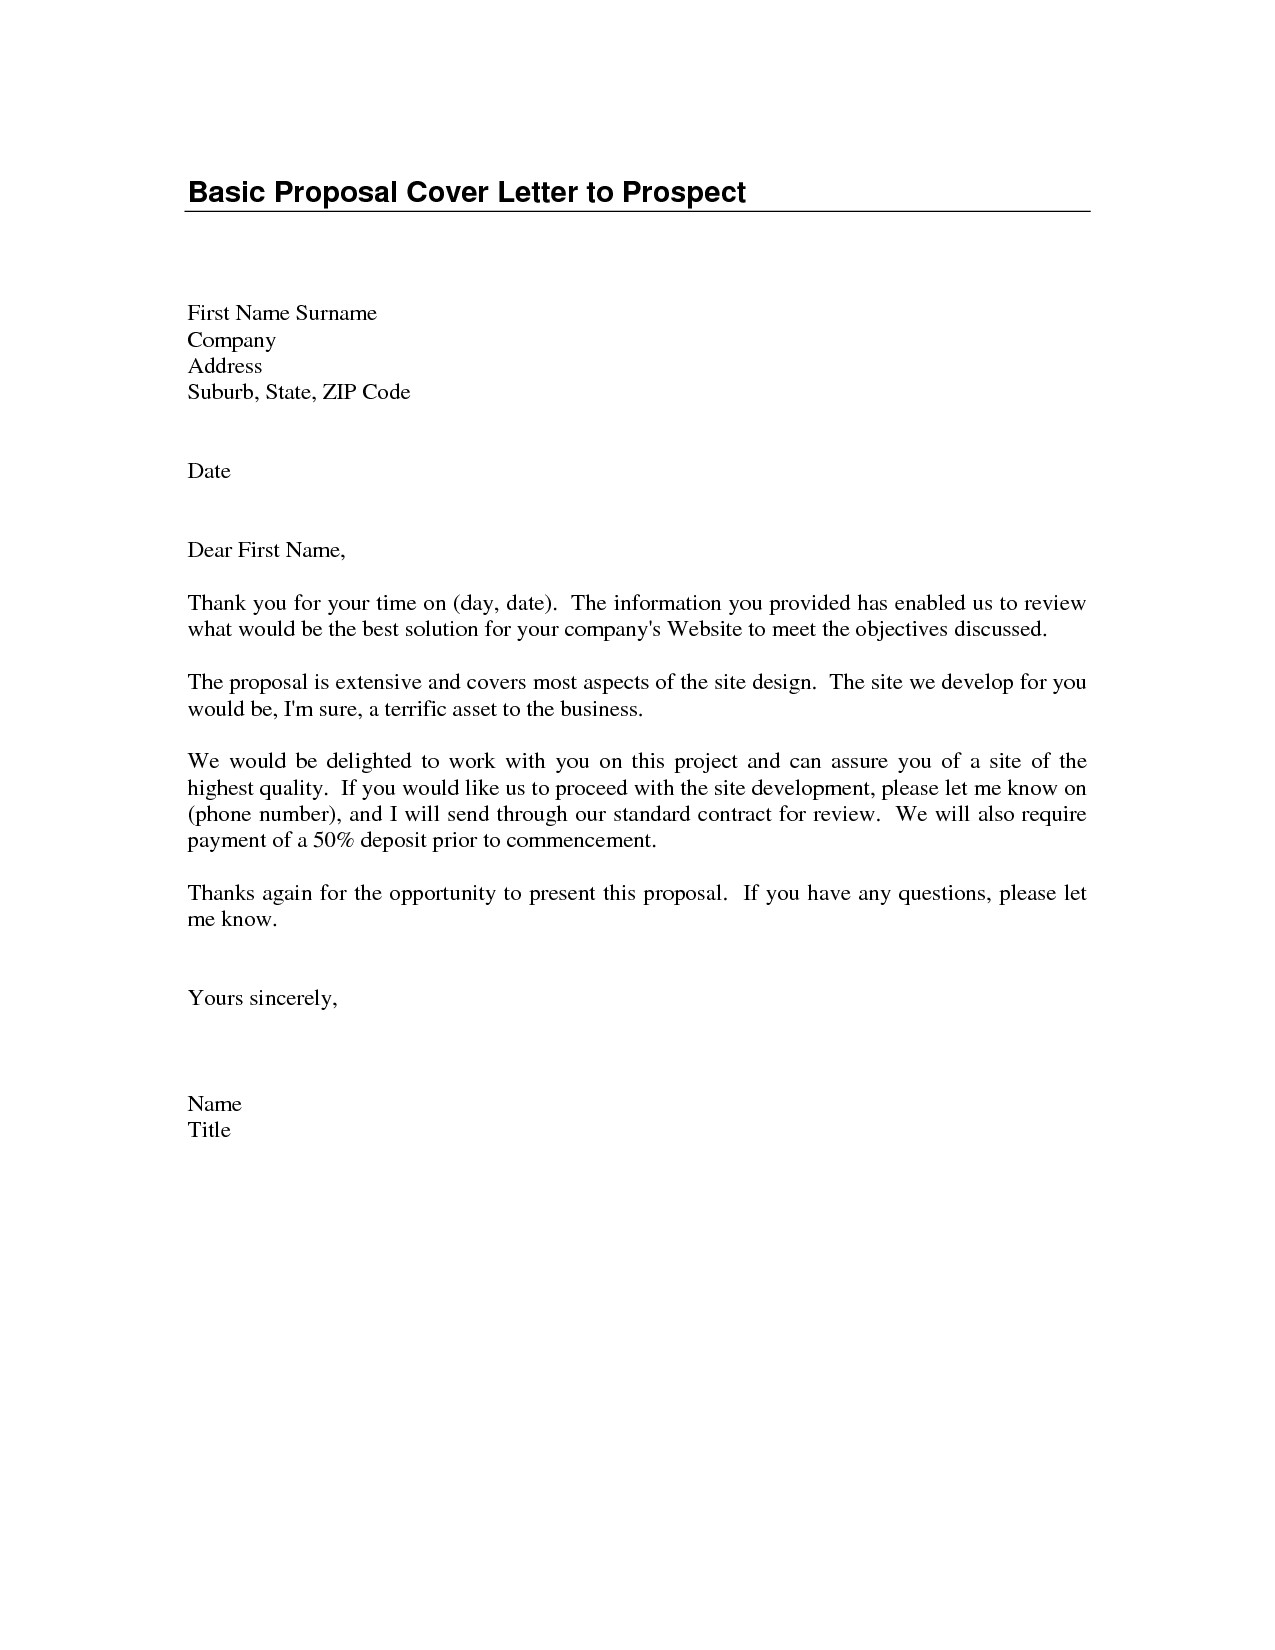 basic cover letter template free Collection-Thank You Letter Template Job Interview Best Job Application Letter format Template Copy Cover Letter 6-s